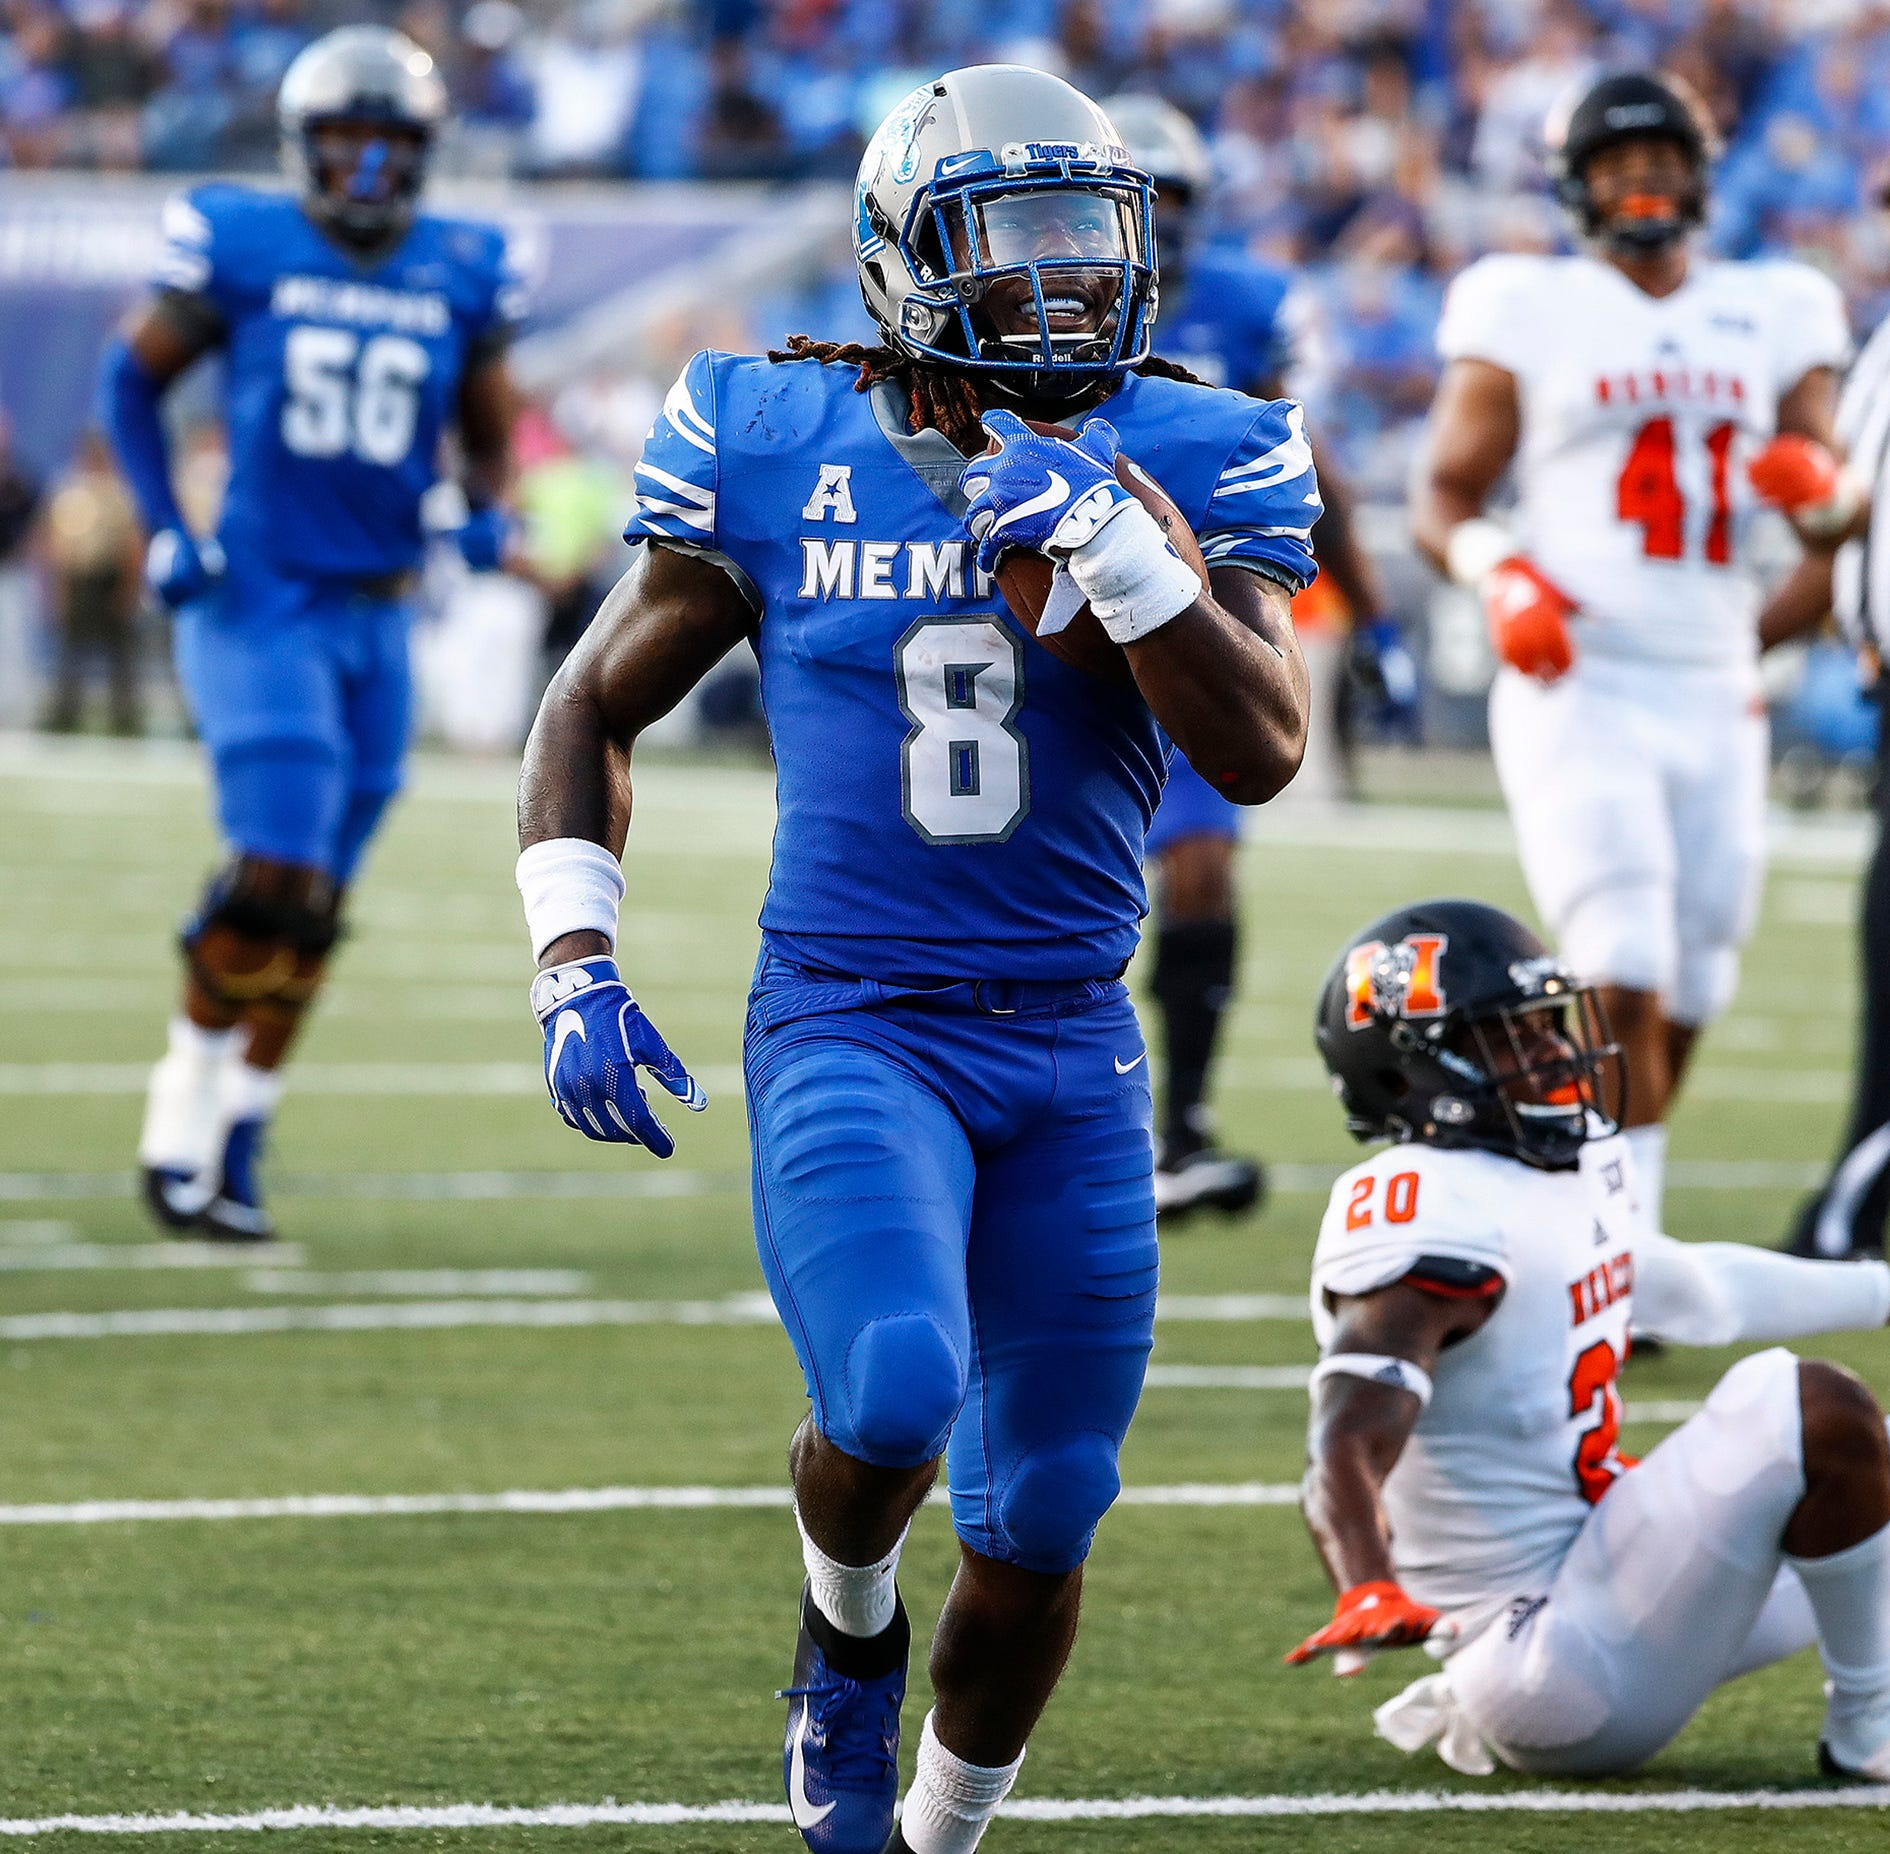 Memphis' Darrell Henderson gets NFL Draft call from Los Angeles Rams while bowling